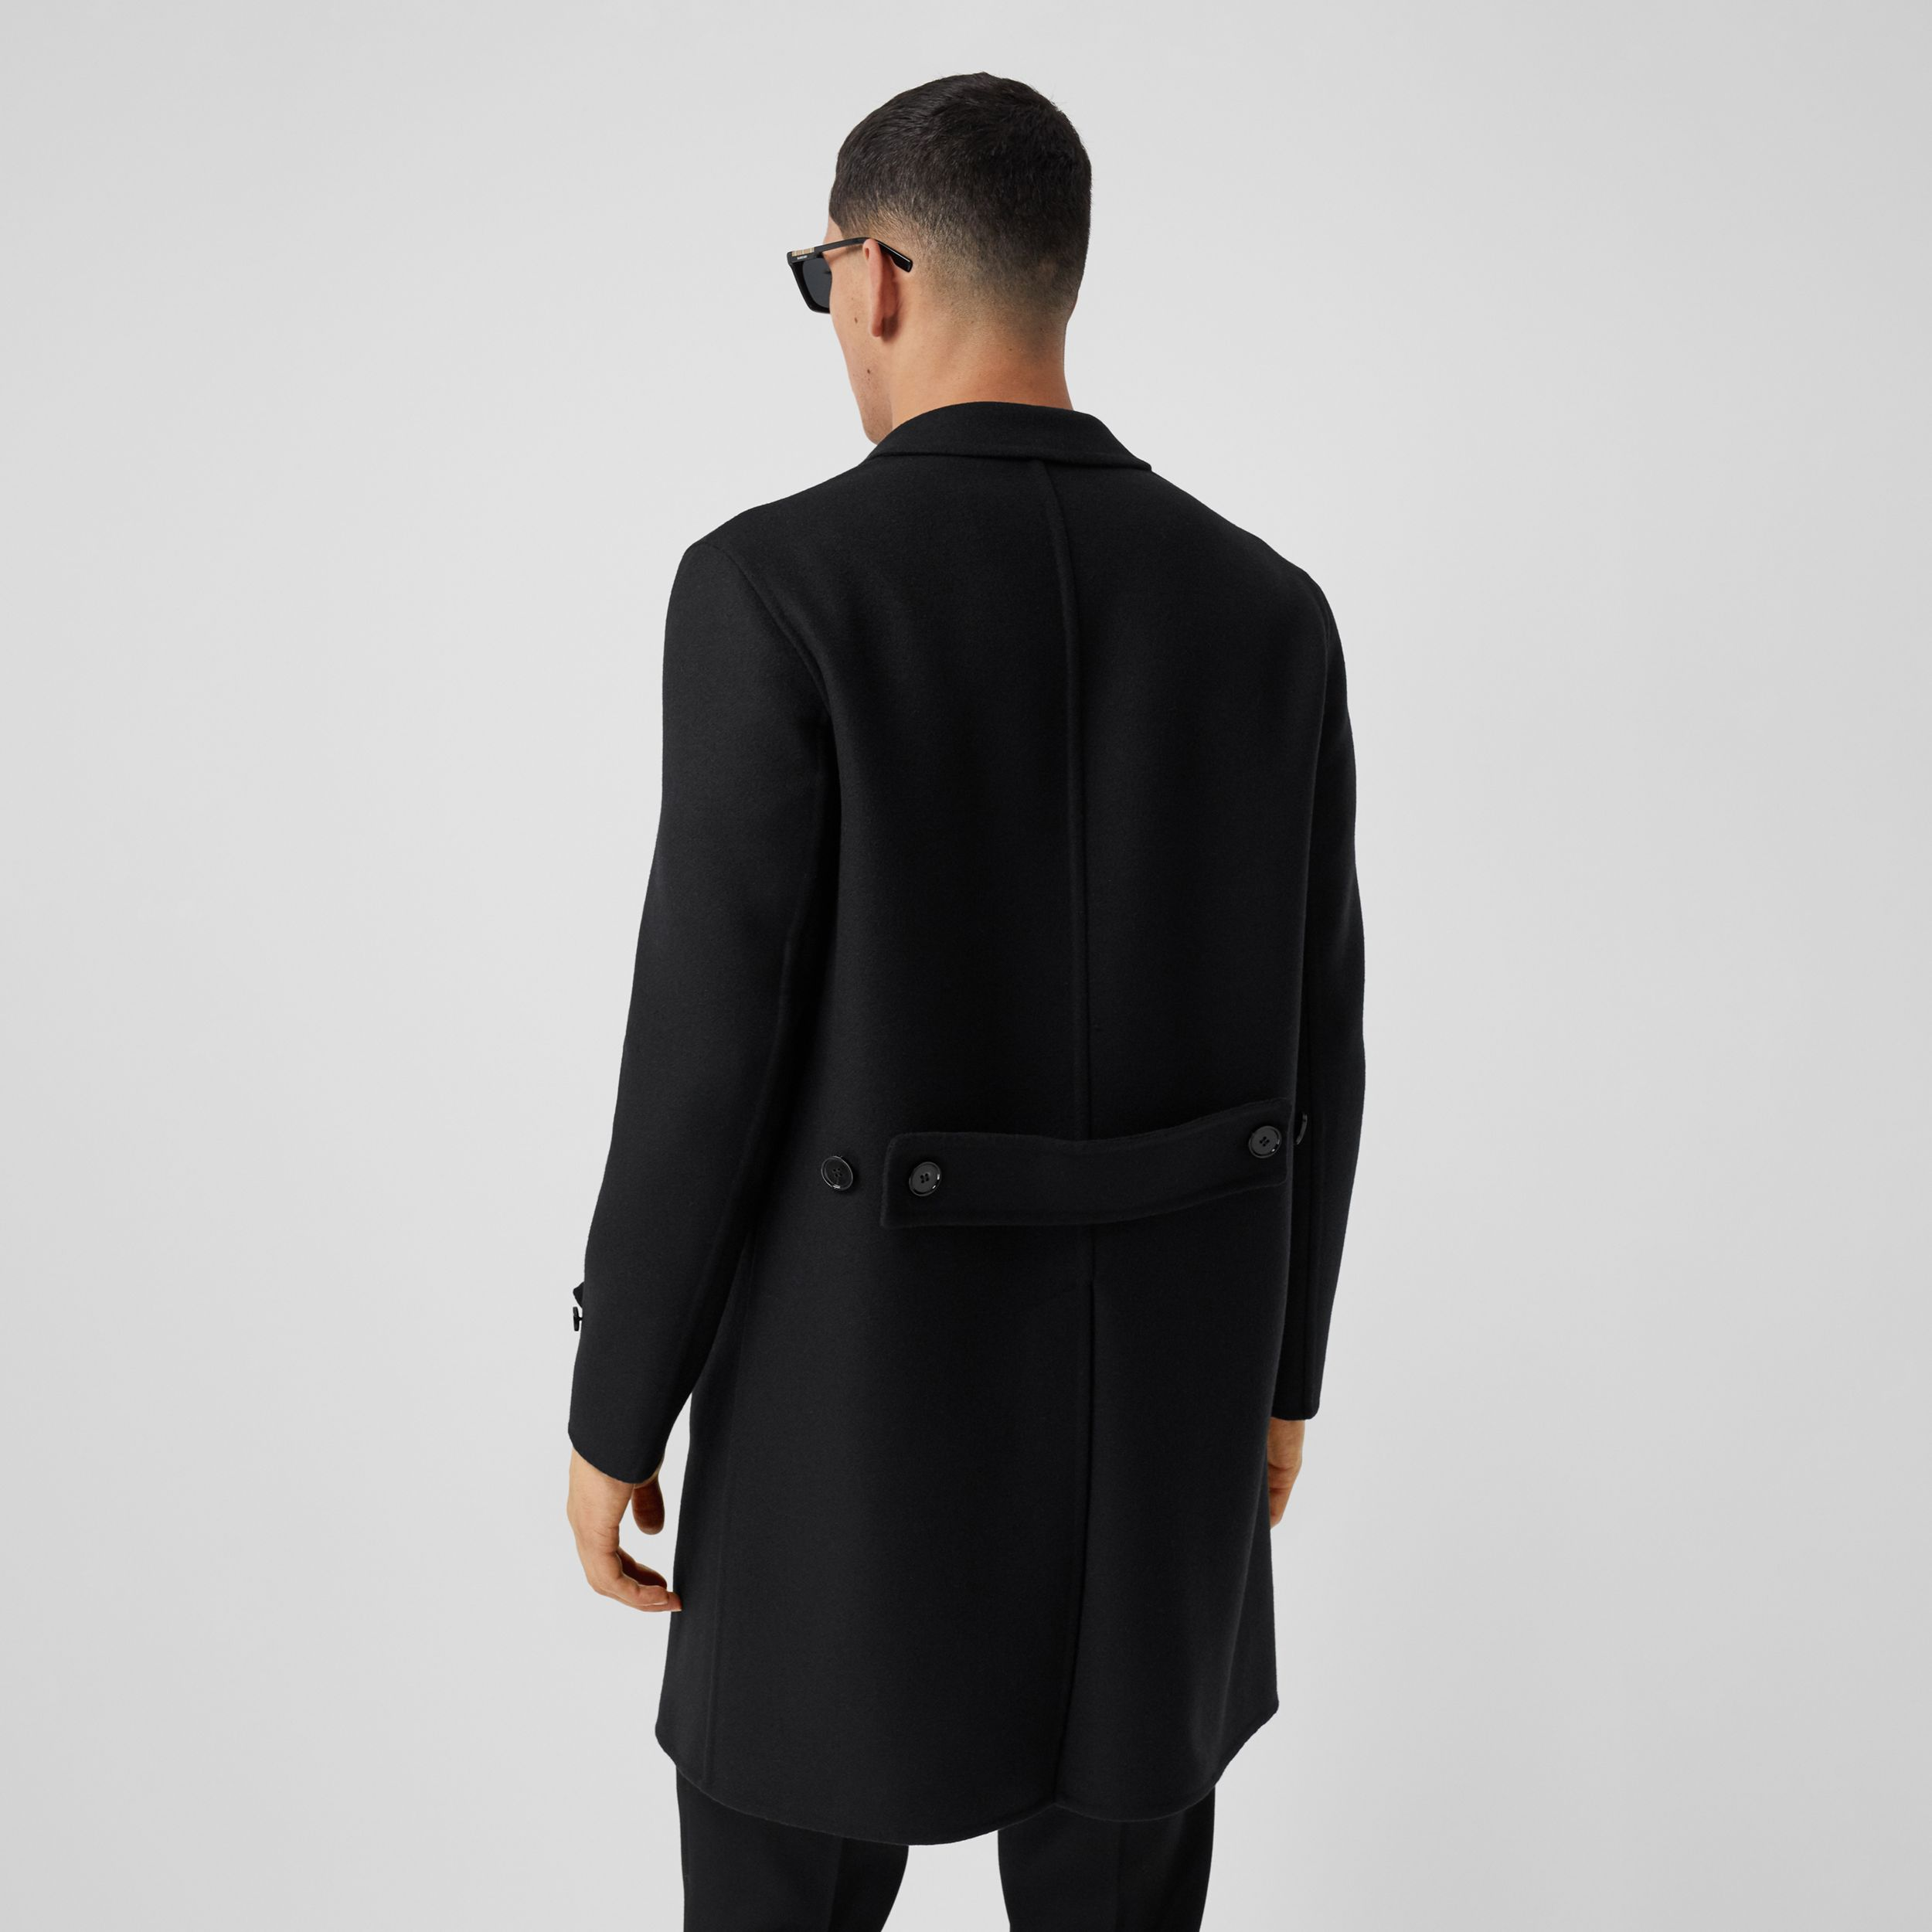 Wool Cashmere Lab Coat in Black - Men | Burberry - 3